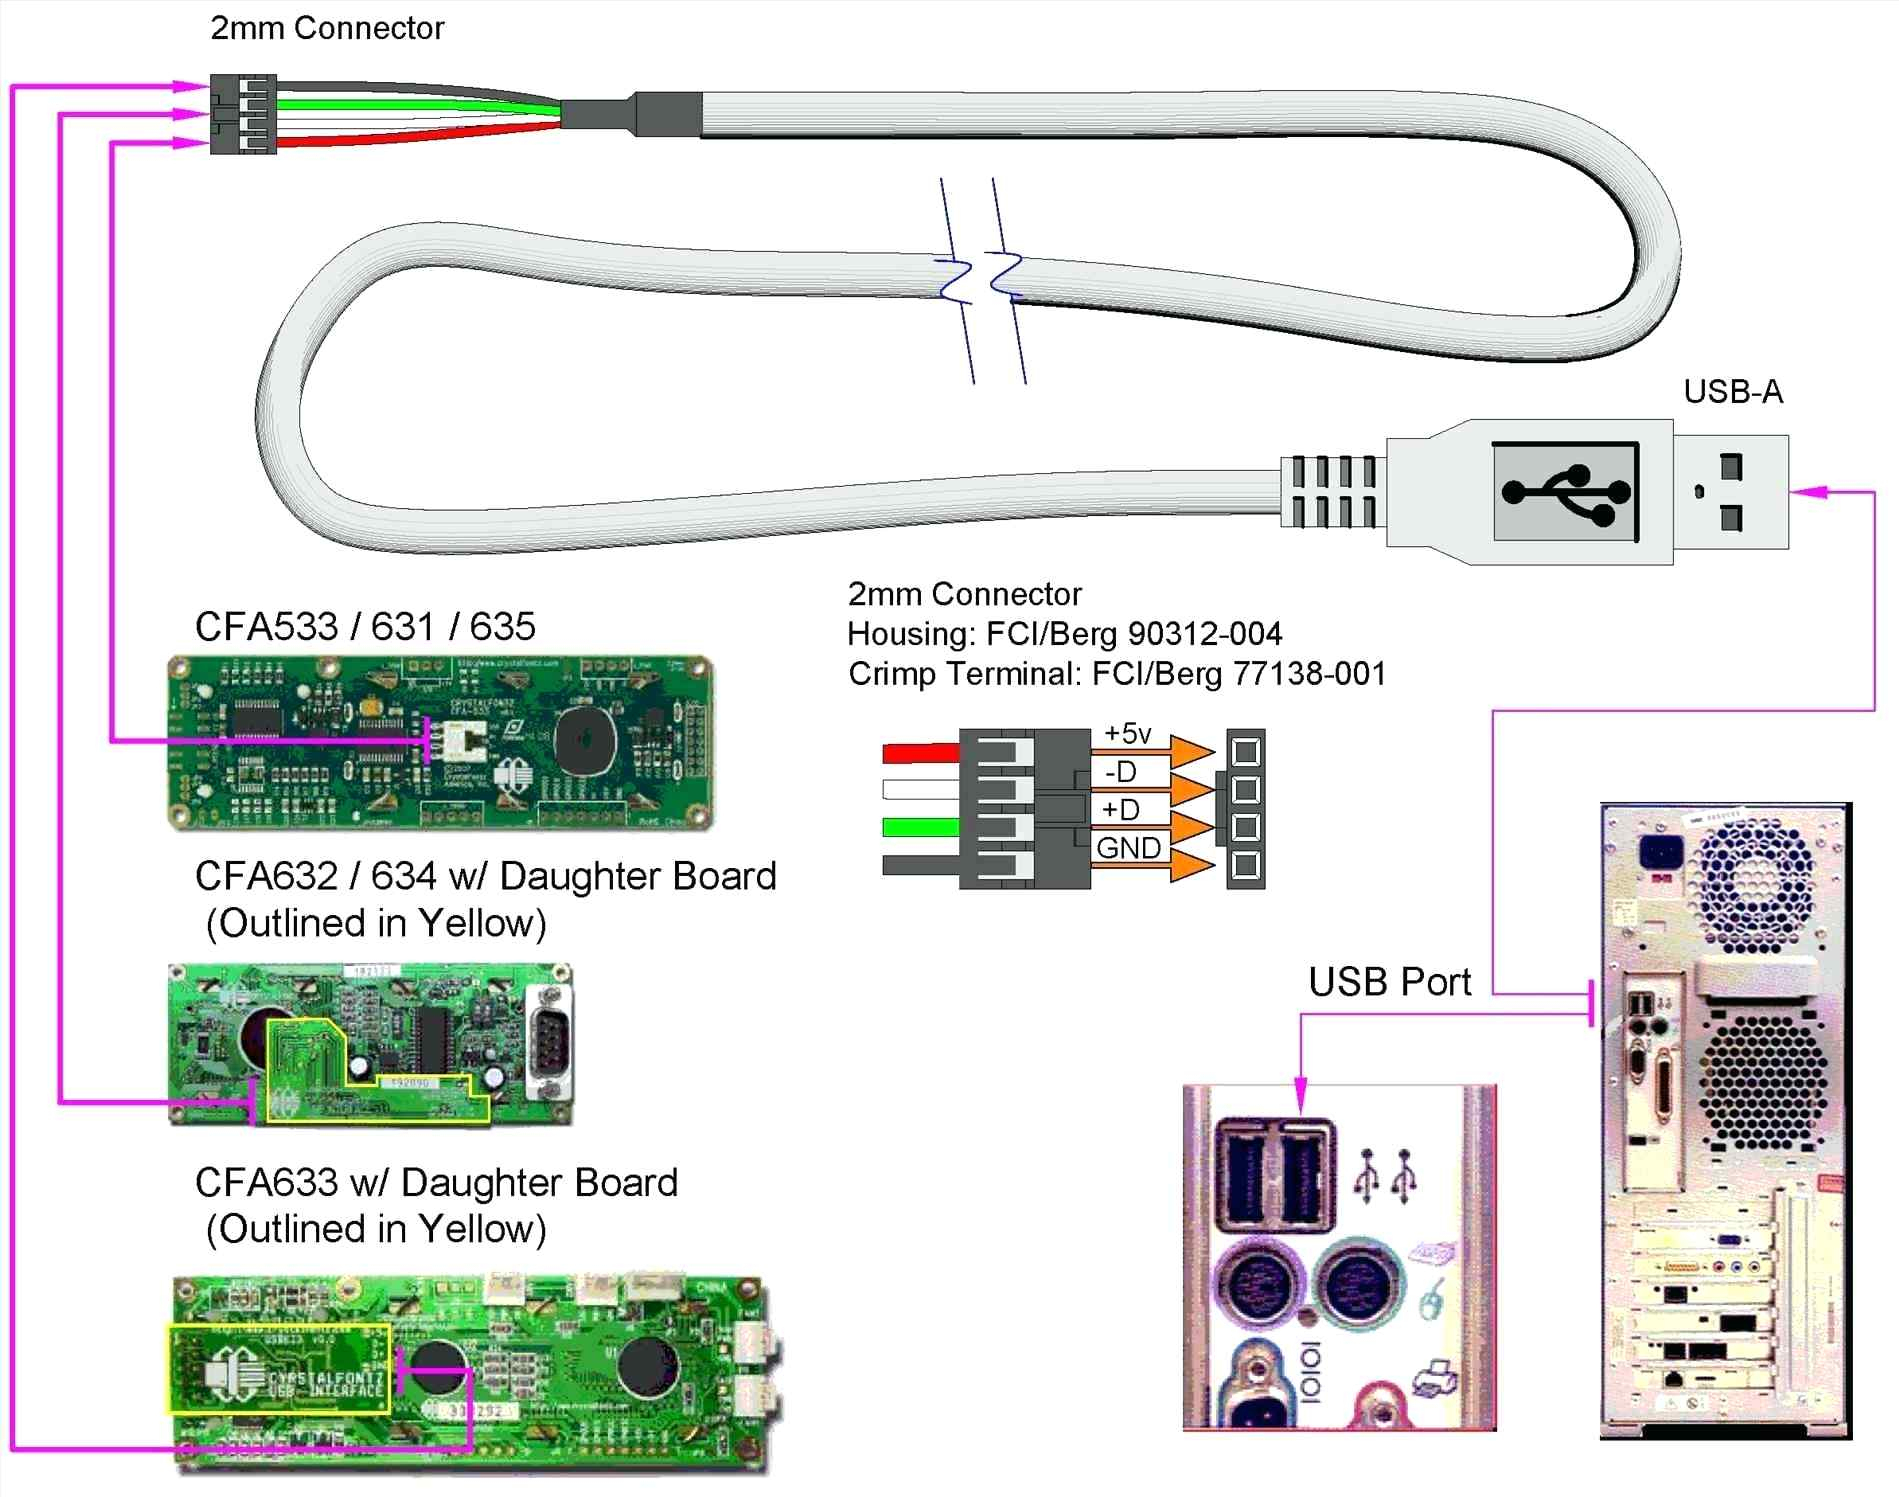 Usb Wiring Diagram - Design Of Electrical Circuit & Wiring Diagram • - Usb To Db9 Wiring Diagram